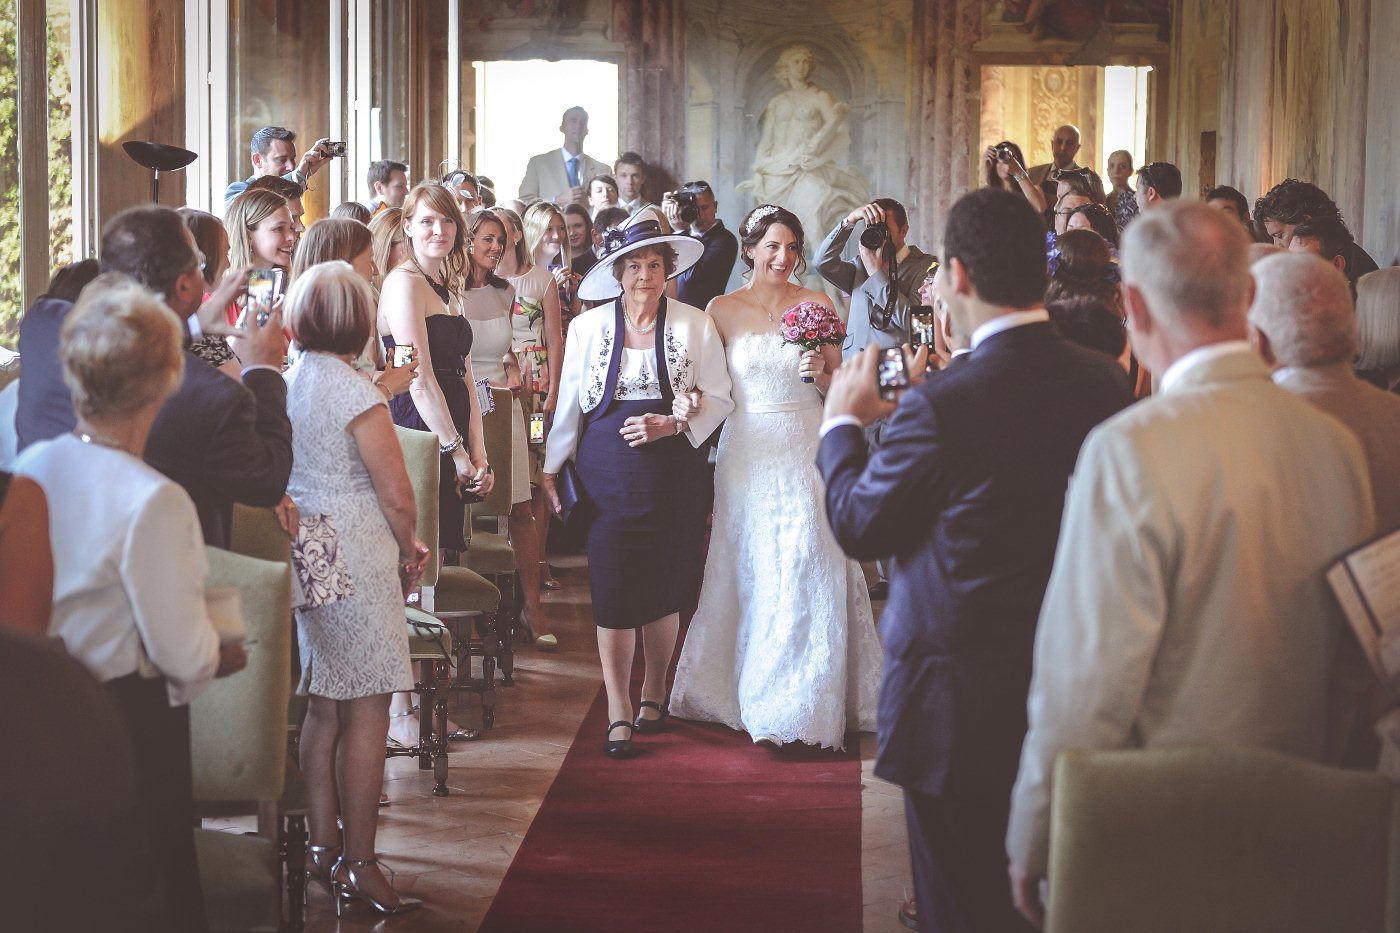 wedding photo villa grazioli_02.jpg